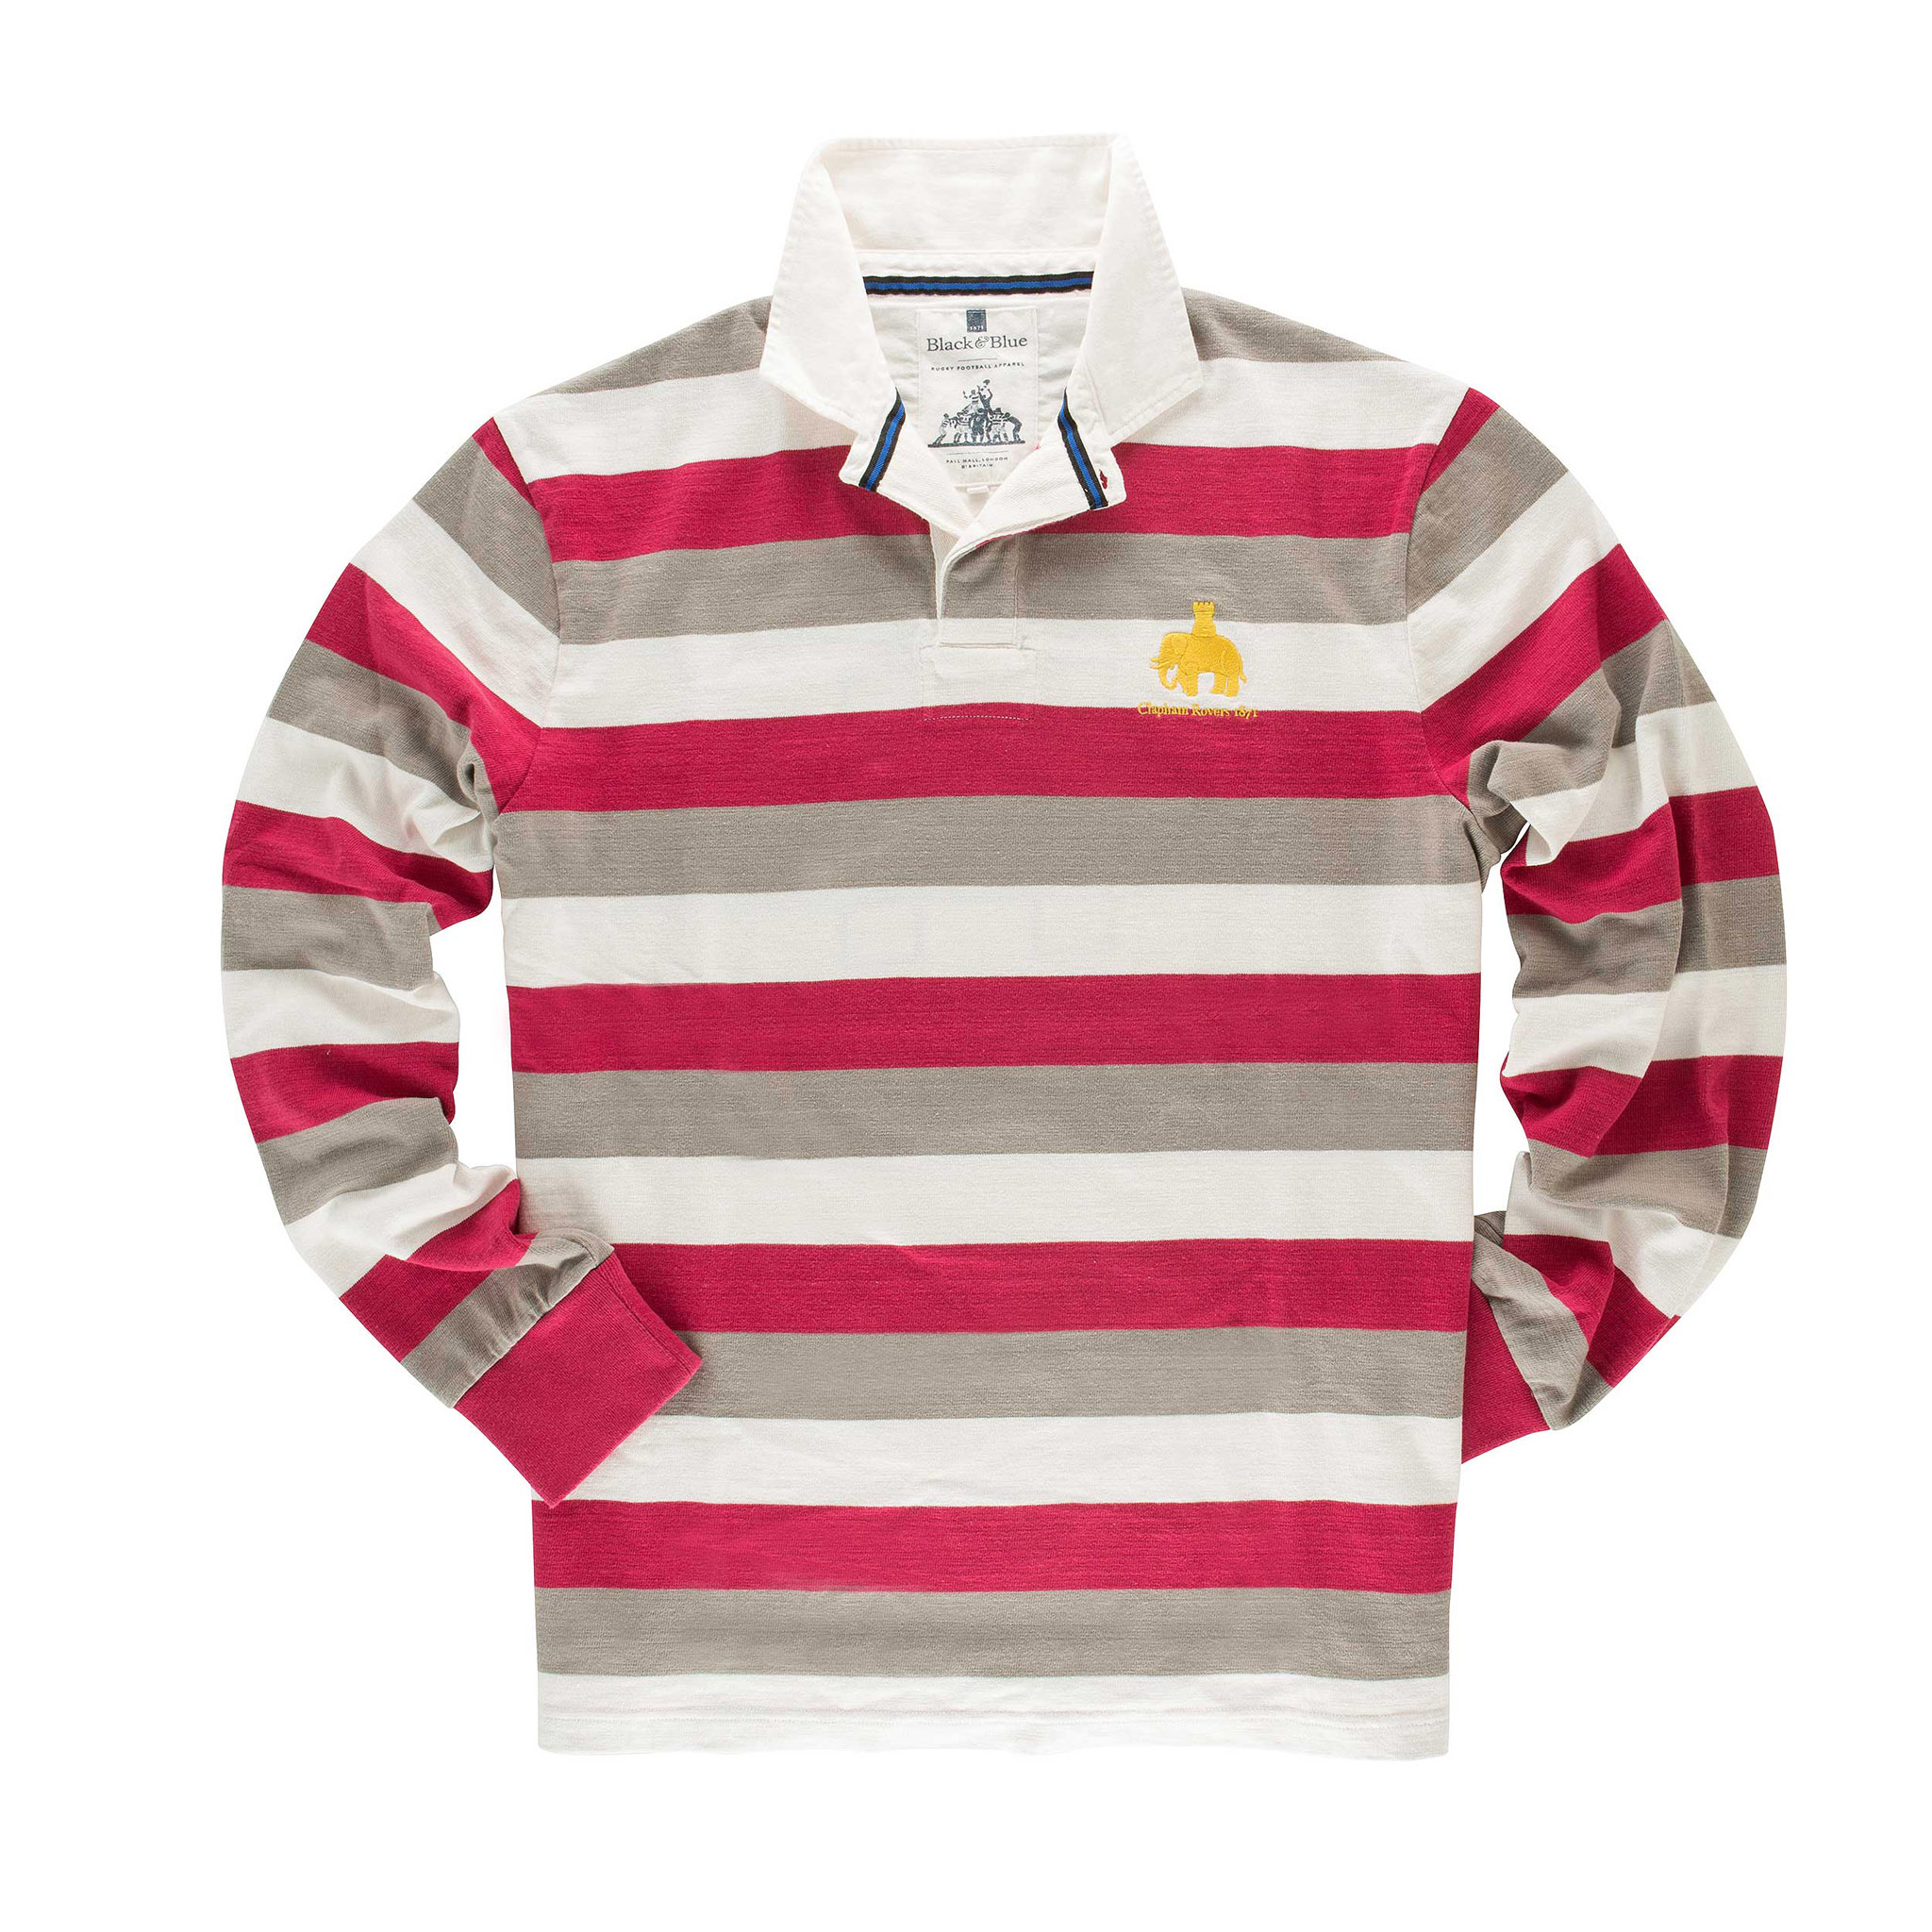 Clapham Rovers 1871 Rugby Shirt - front